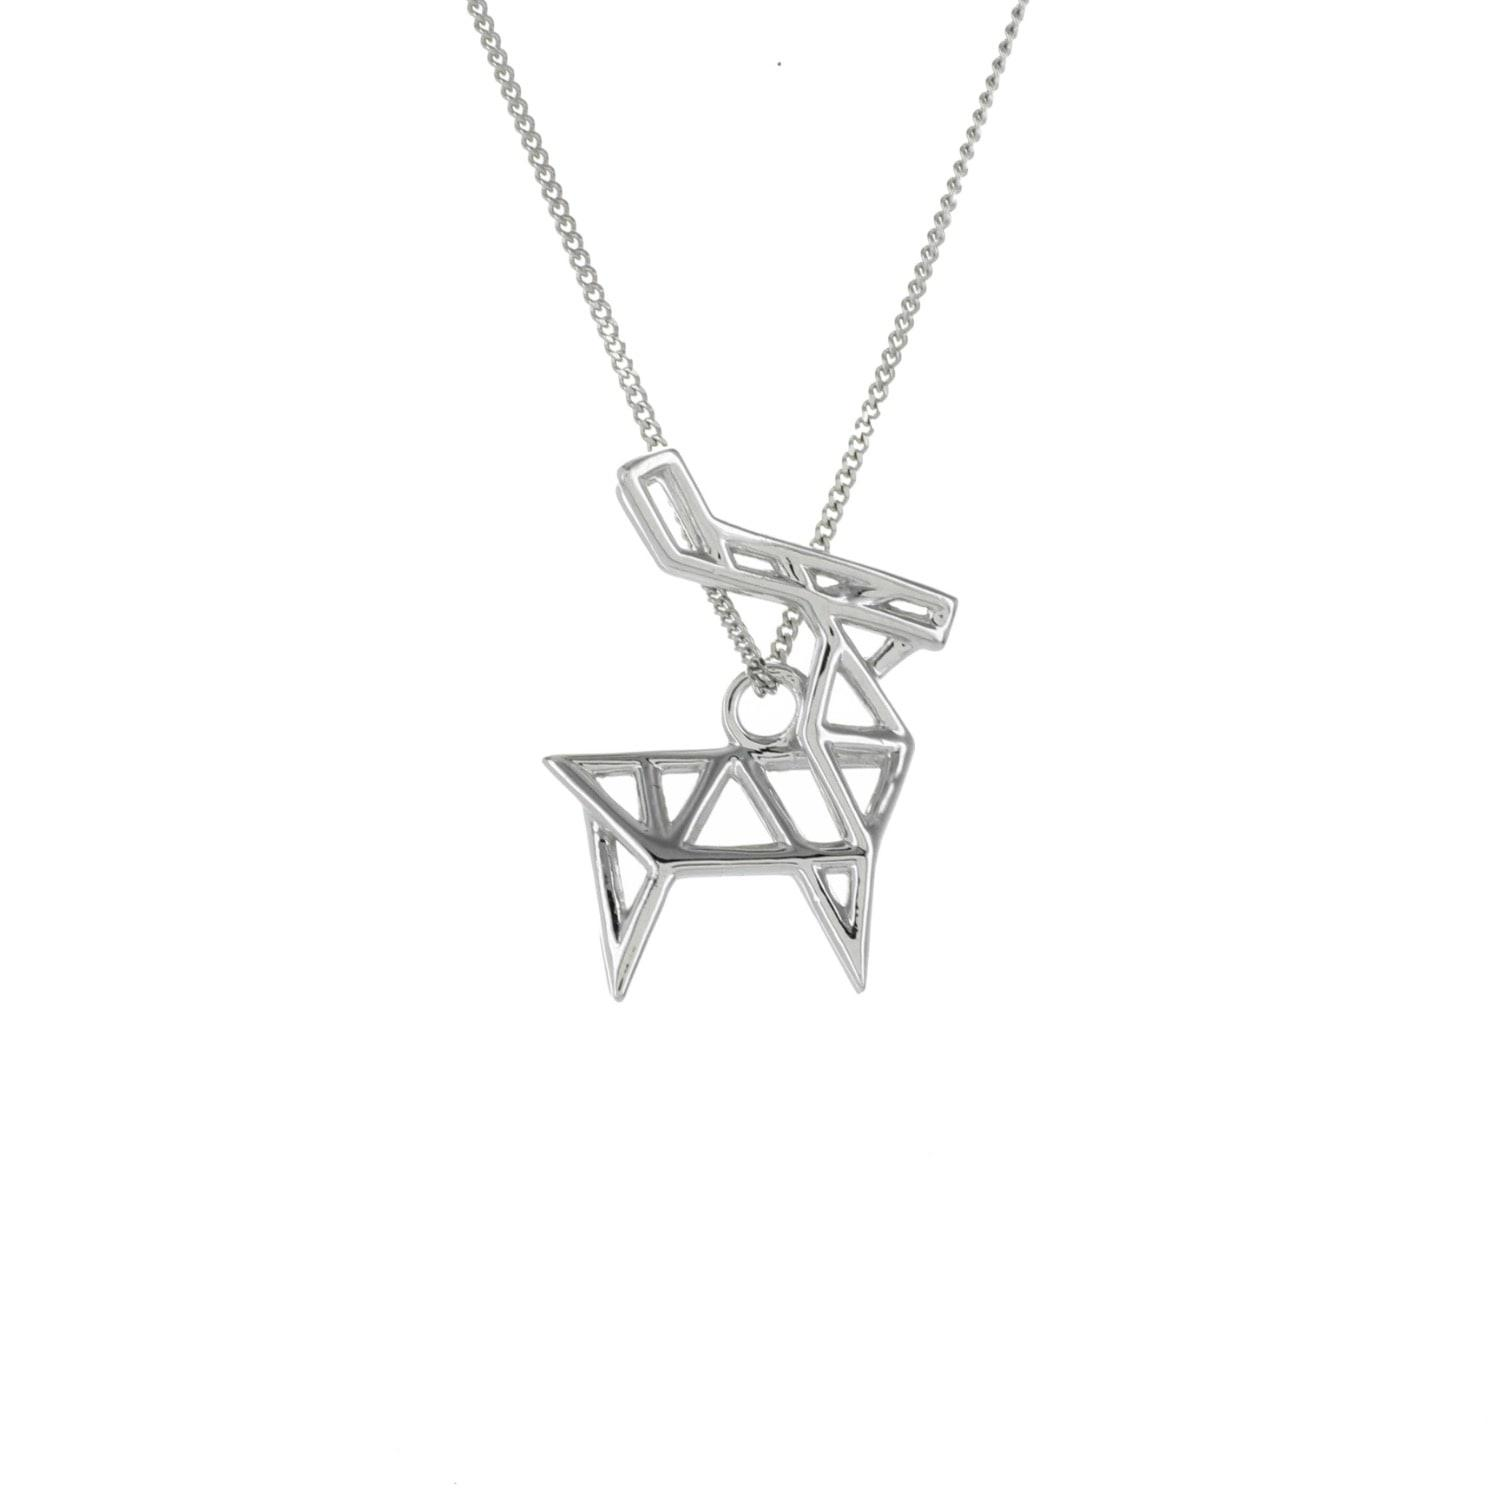 Origami Jewellery Sterling Silver & Gold Mini Deer Origami Necklace ahinTP